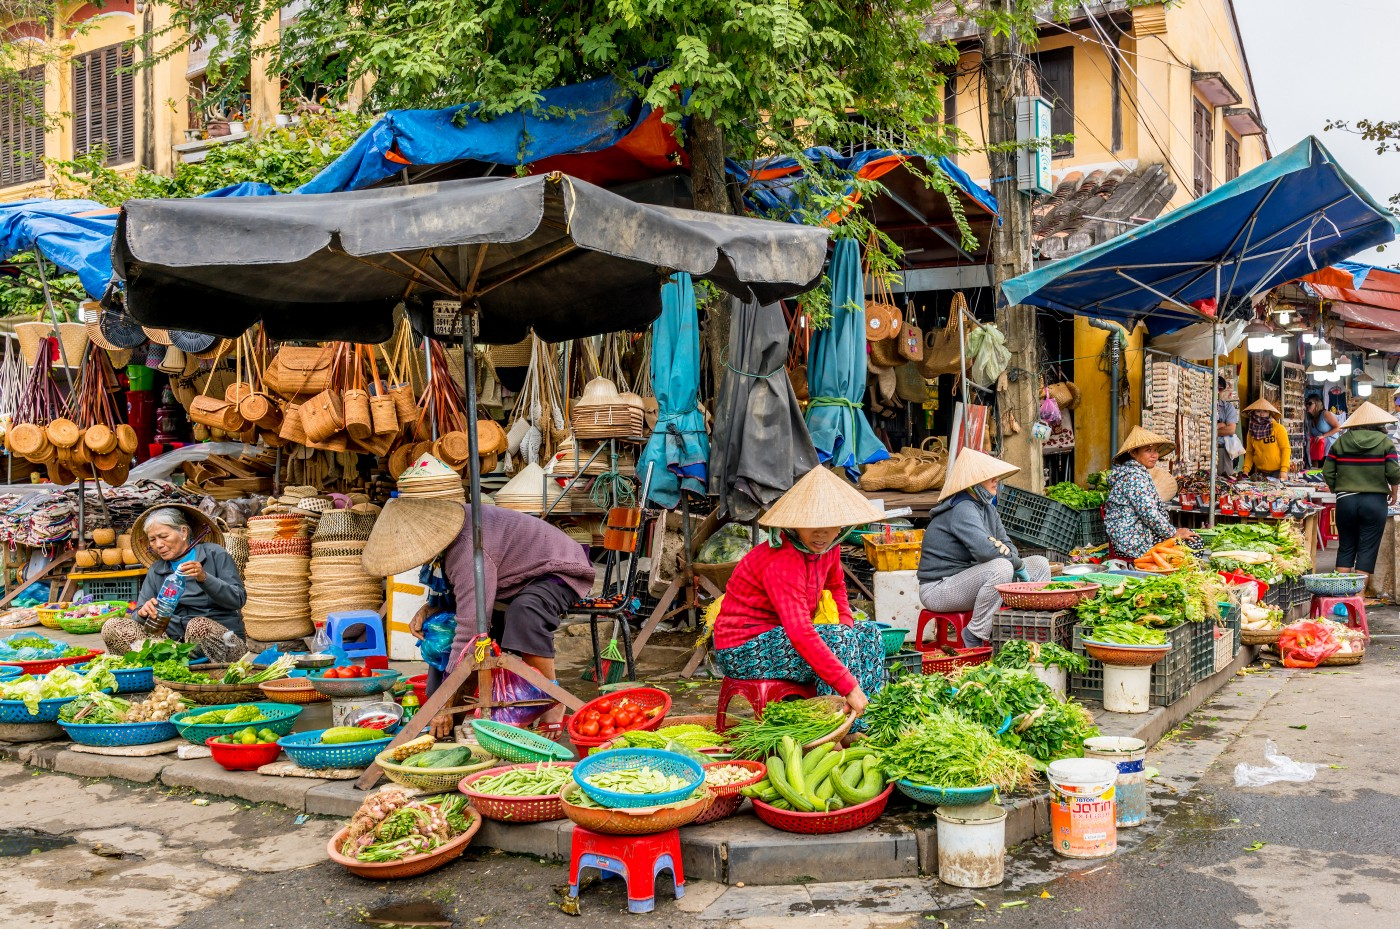 Women selling produce in a market in Hoi An, Vietnam